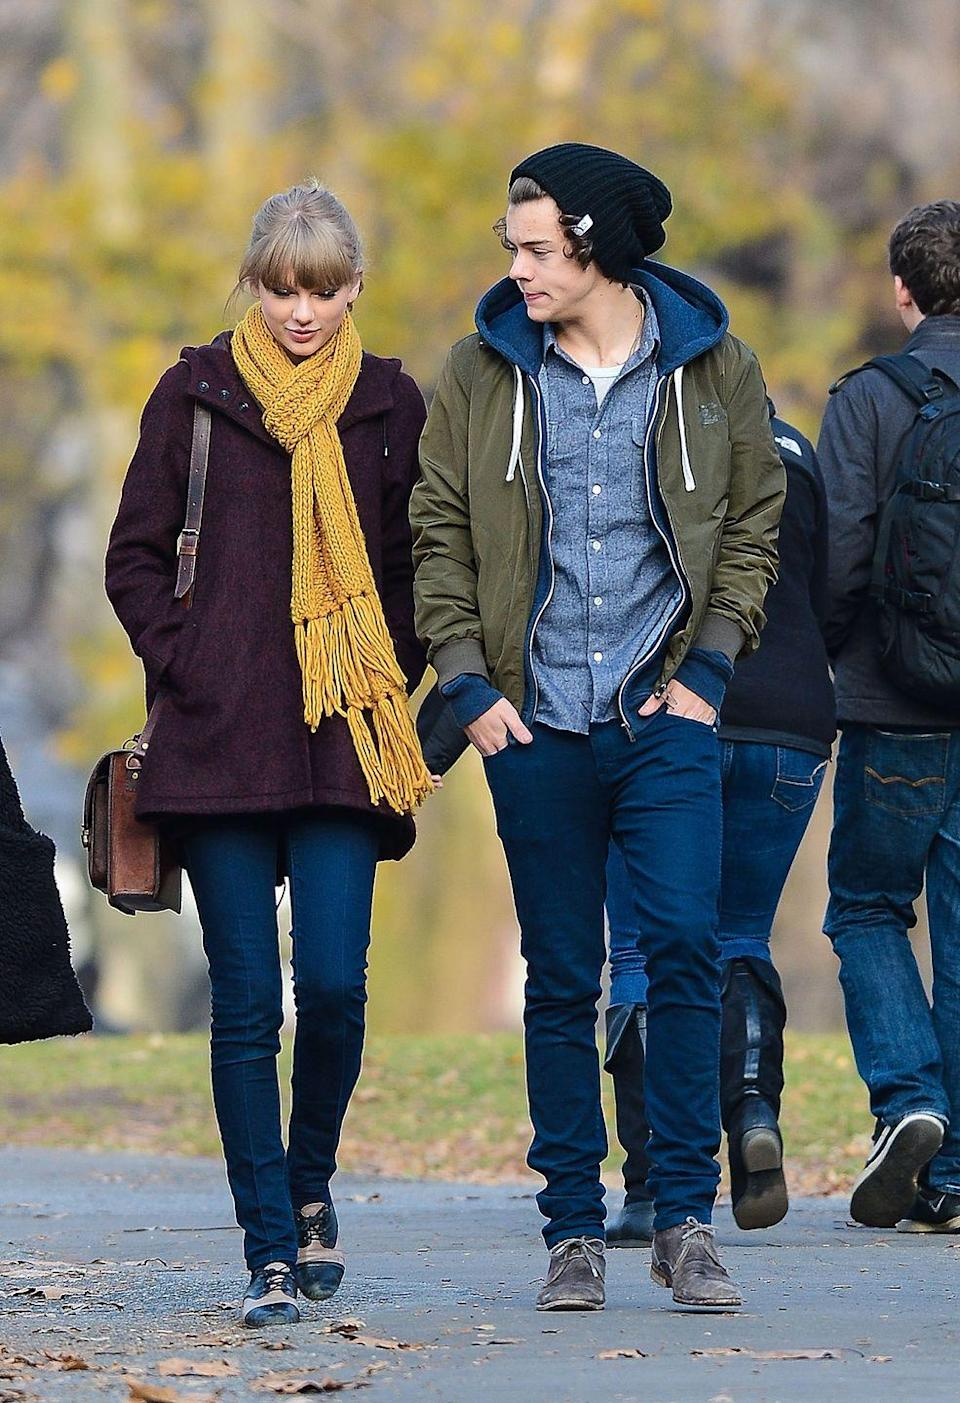 """<p>This fall 2012 date between Taylor Swift and Harry Styles will never go, well, out of """"Style."""" At least one can assume that this <em>isn't </em>the scarf <a href=""""https://www.elle.com/uk/fashion/news/a38578/maggie-gyllenhaal-talks-taylor-swift-scarf/"""" rel=""""nofollow noopener"""" target=""""_blank"""" data-ylk=""""slk:Swift left at Maggie Gyllenhaal's house..."""" class=""""link rapid-noclick-resp"""">Swift left at Maggie Gyllenhaal's house...</a> or her new <em>folklore</em>-era """"cardigan.""""</p>"""